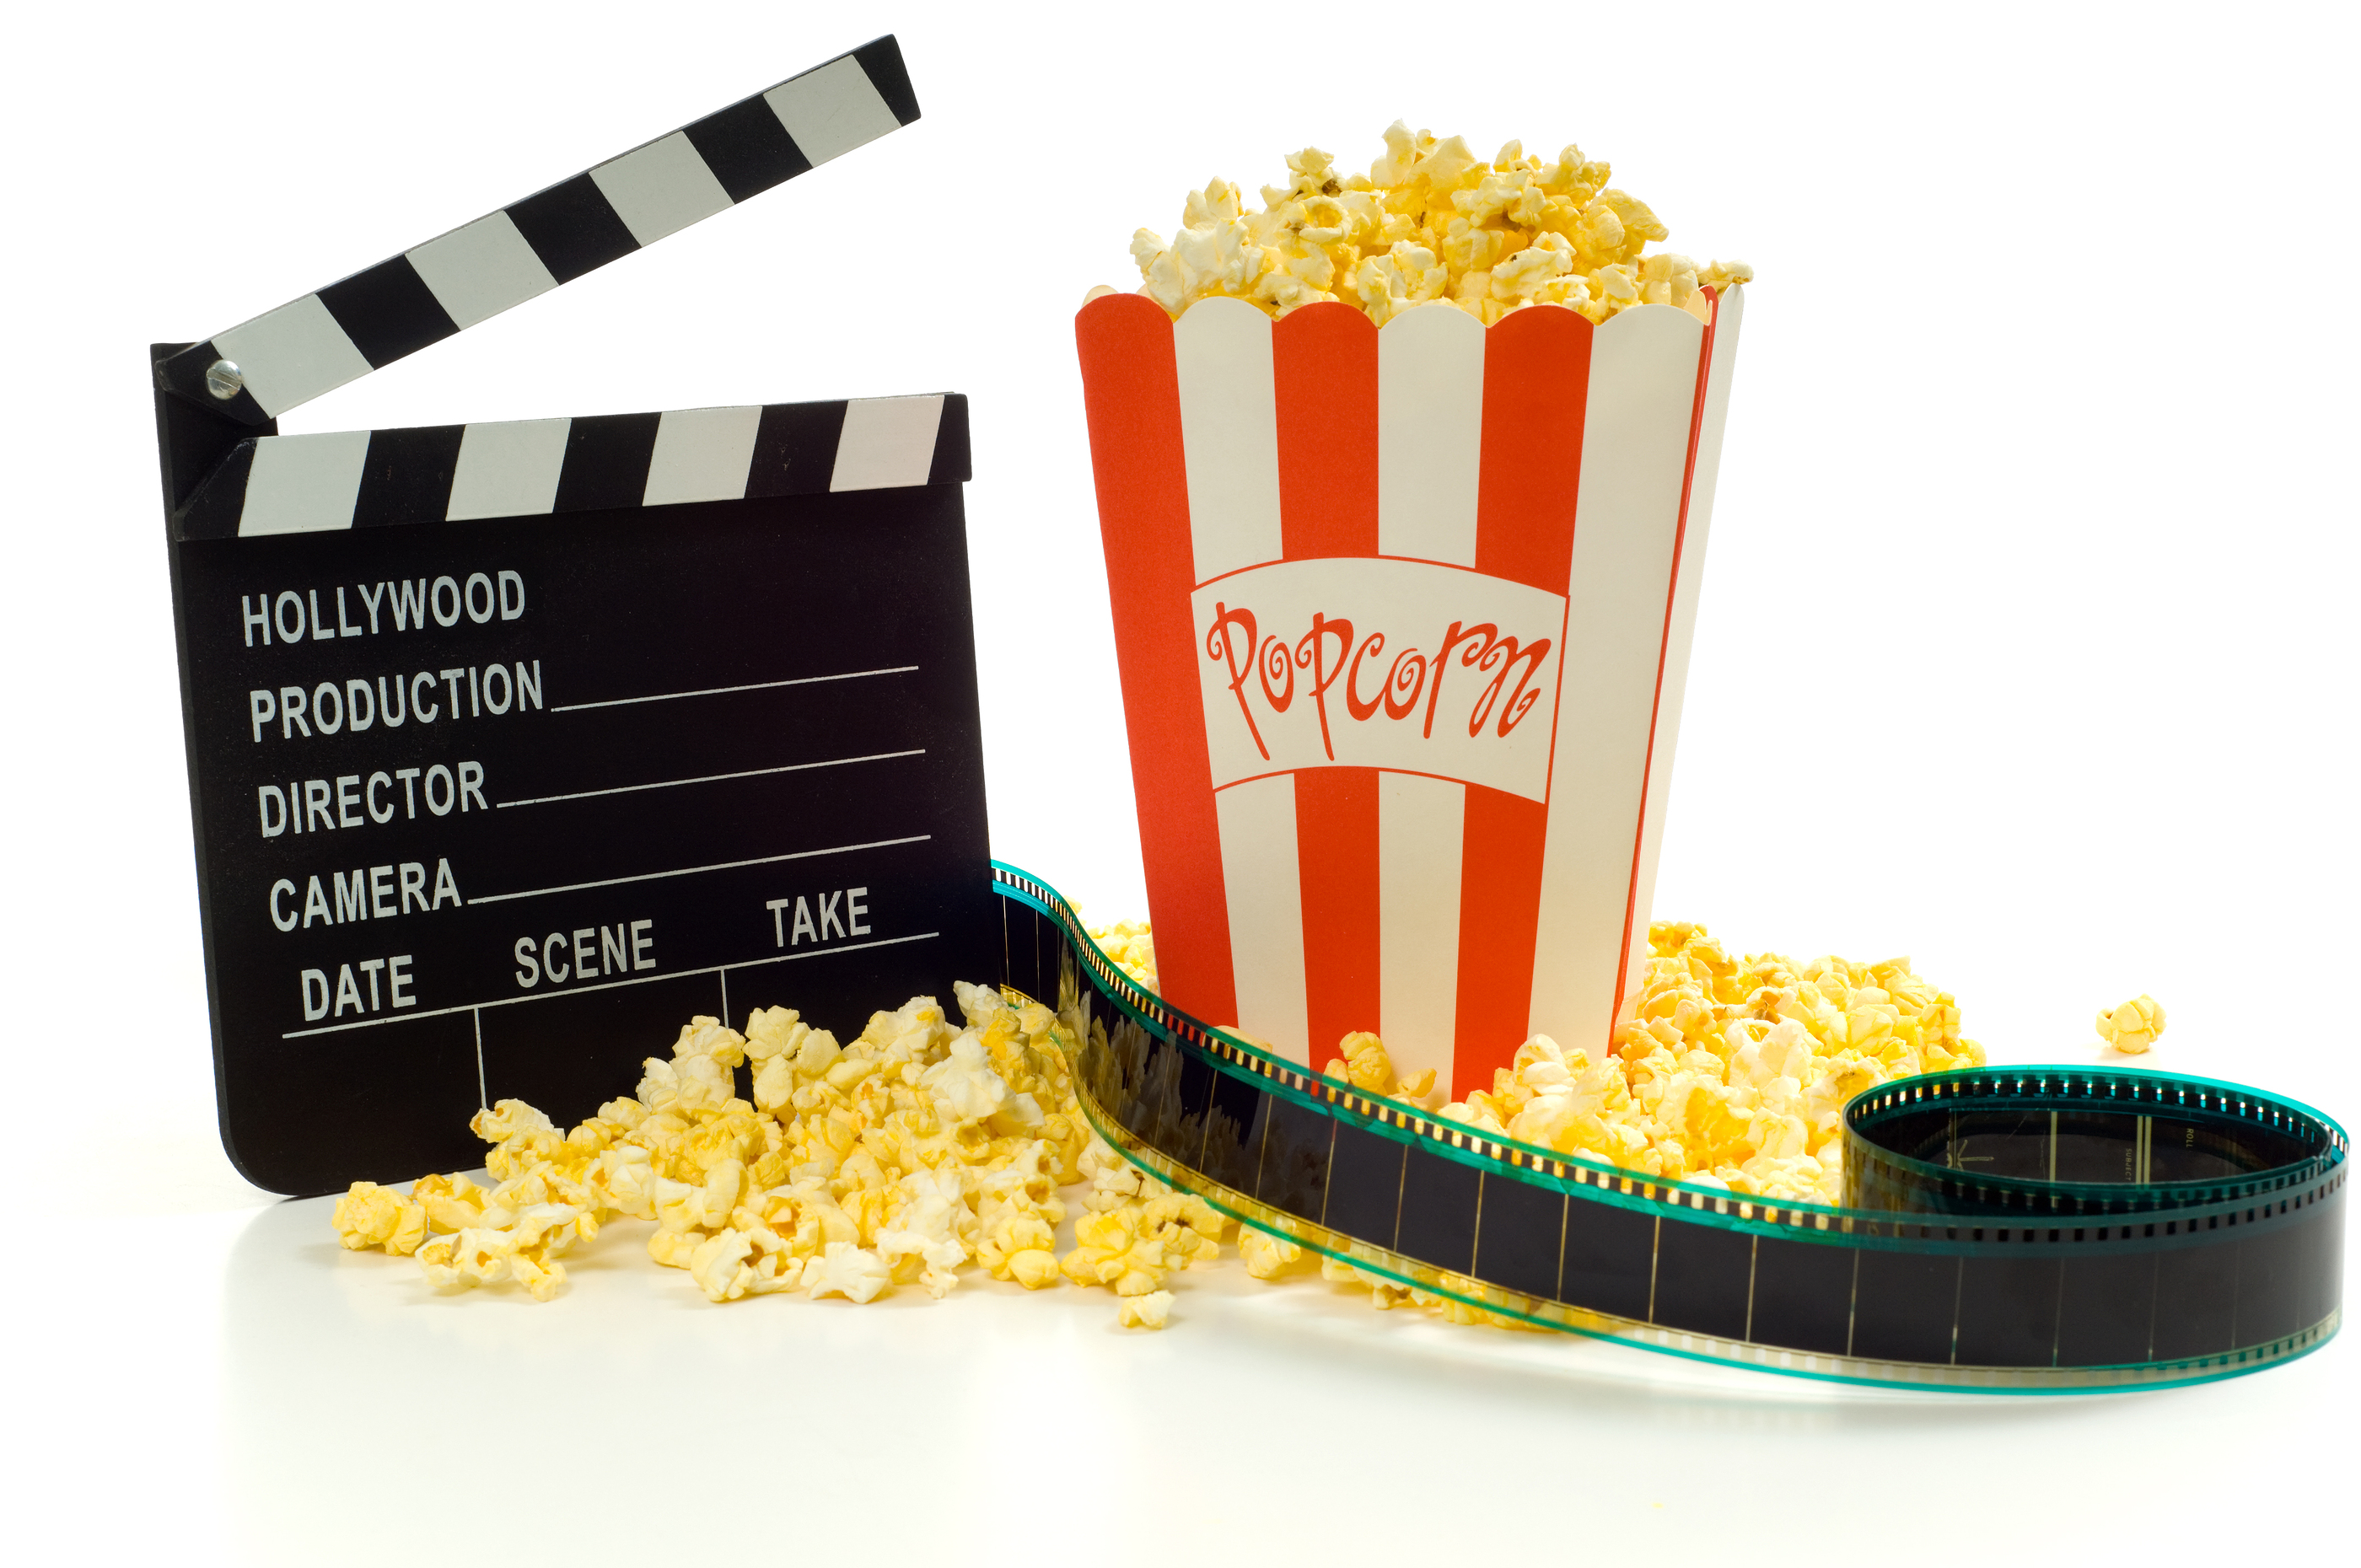 Movie and entertainment industry items, including a box of popcorn a movie clapboard and a strip of 35mm film